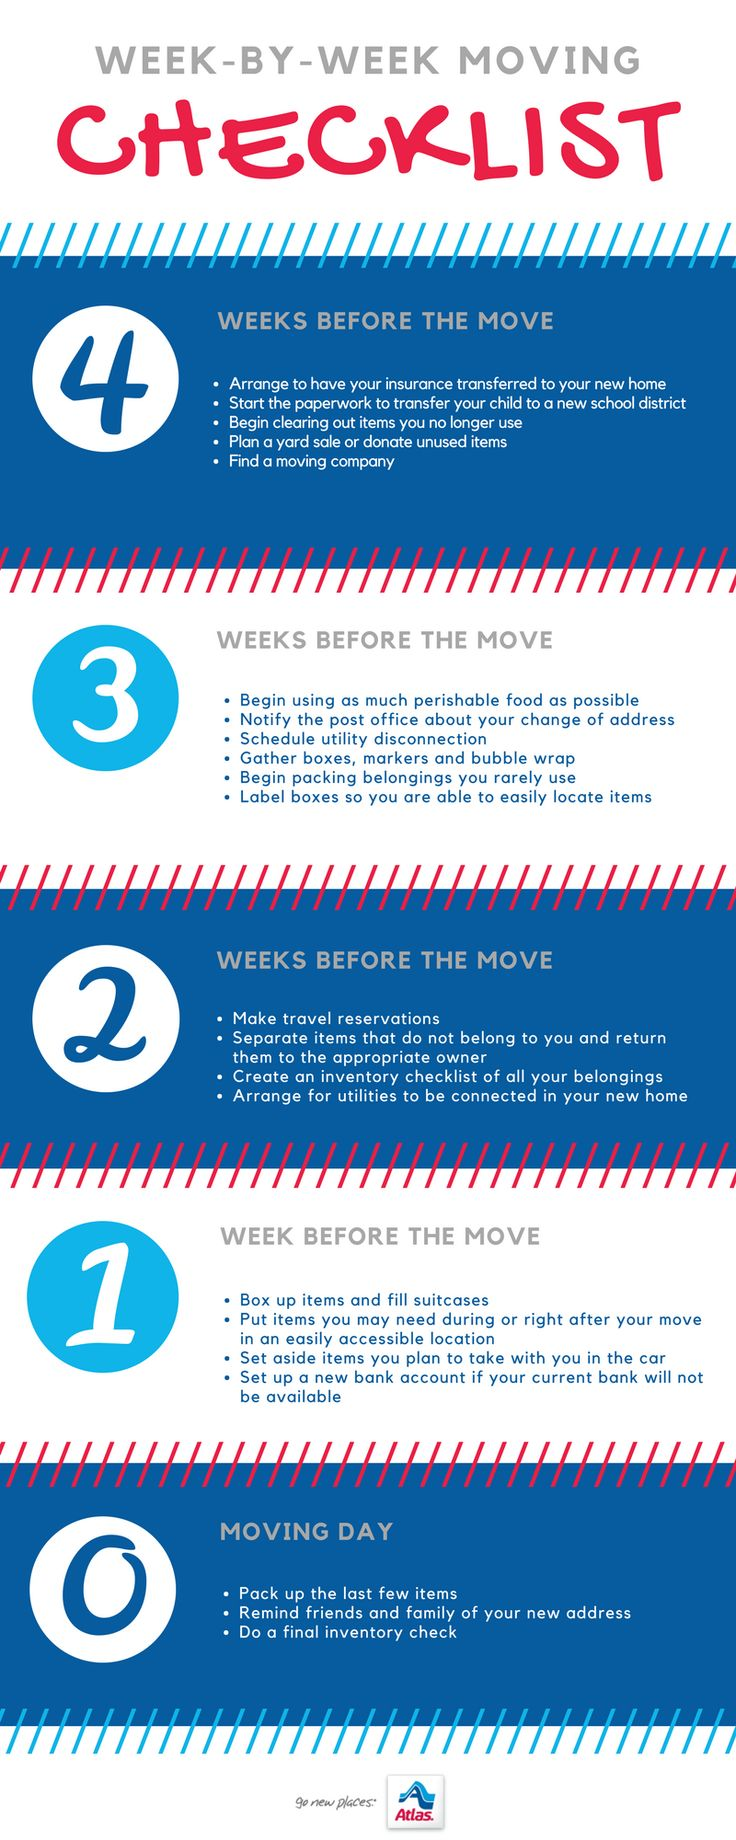 To make relocating easier, create a moving checklist that starts at least four weeks from the move-out date. #move #moving #checklist #movingchecklist #week #weekly #list #movinglist #fourweeks #threeweeks #twoweeks #oneweek #movingday #tips #movingtips #atlas #atlasvanlines #gonewplaces #relocating #relocation #moveout #date #moveoutdate #moveinready #plan #planning #planner #check #checkmark